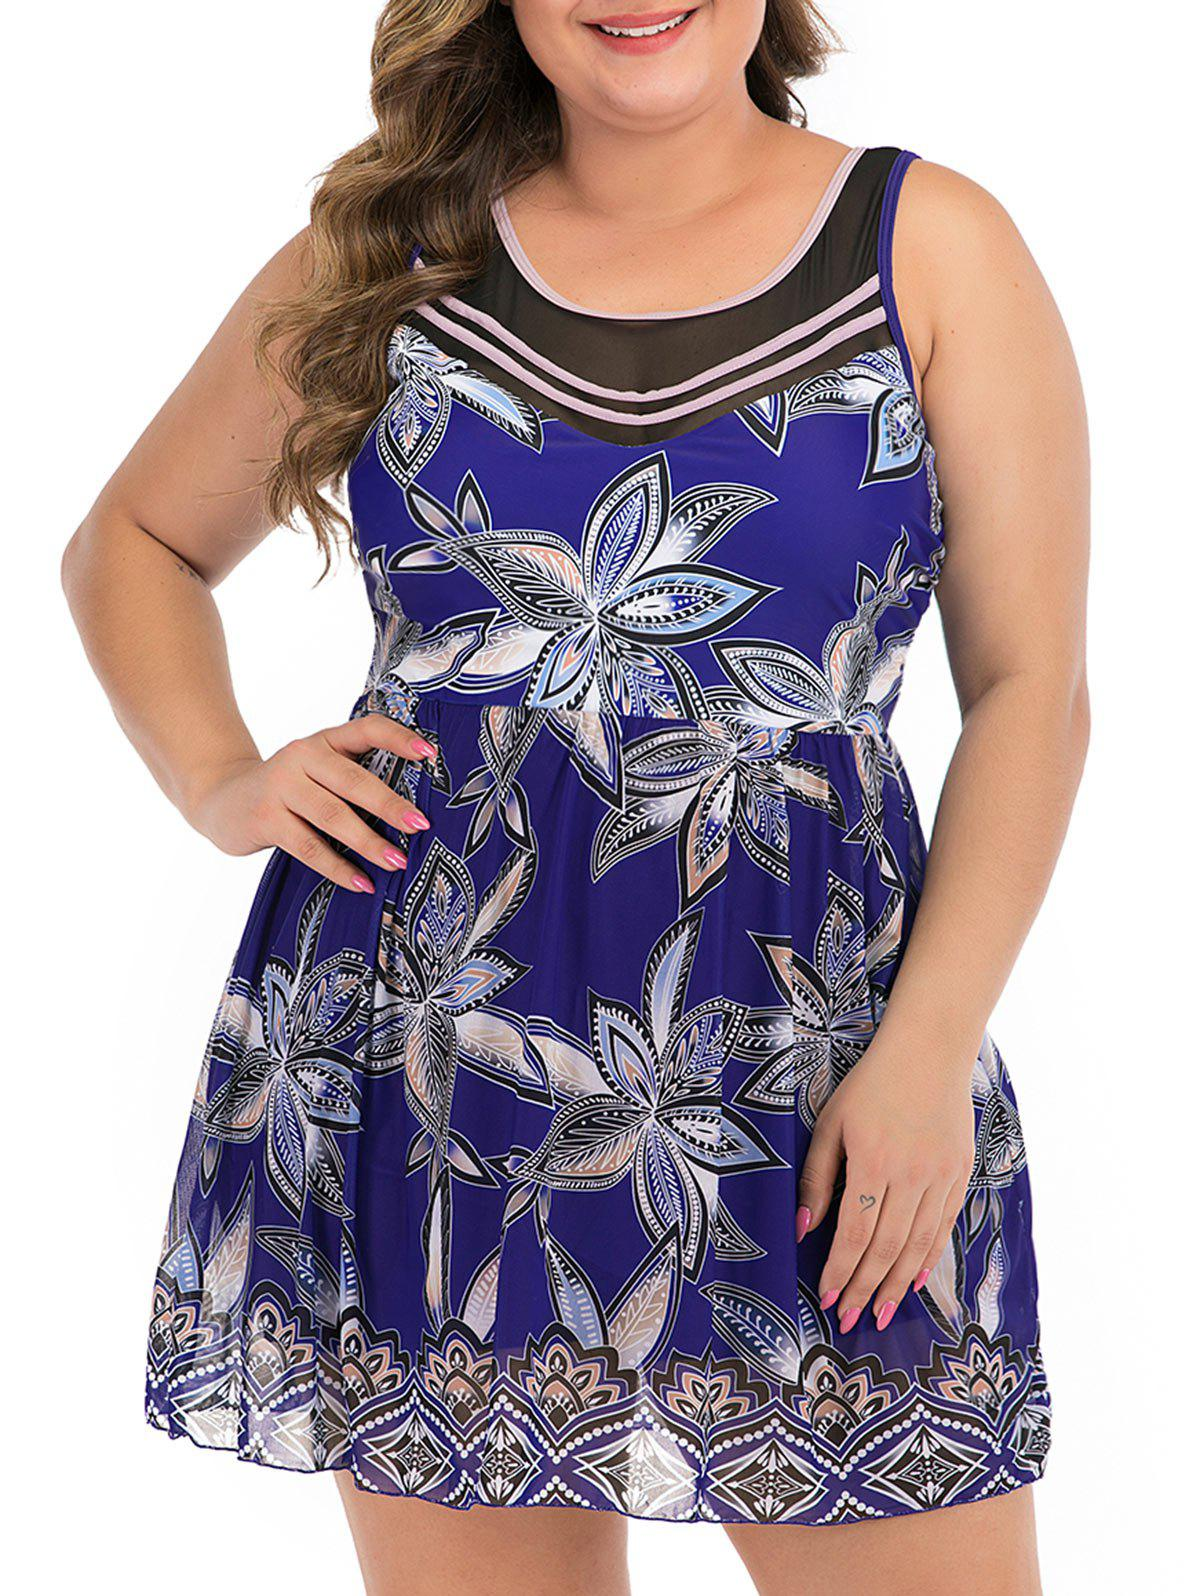 Floral Mesh Panel Tie Back Plus Size Skirted Swimsuit - BLUE 1X